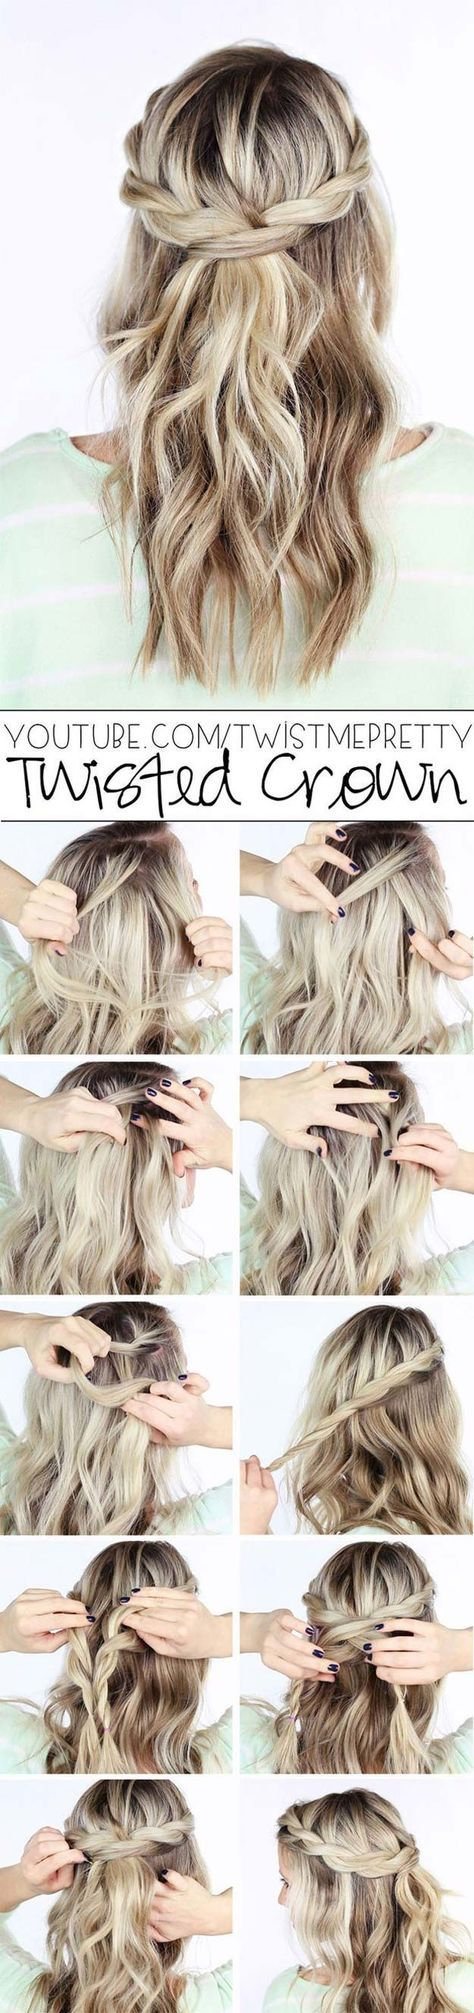 41 Diy Cool Easy Hairstyles That Real People Can Do At Home Hair Styles Pinterest Hair Long Hair Styles